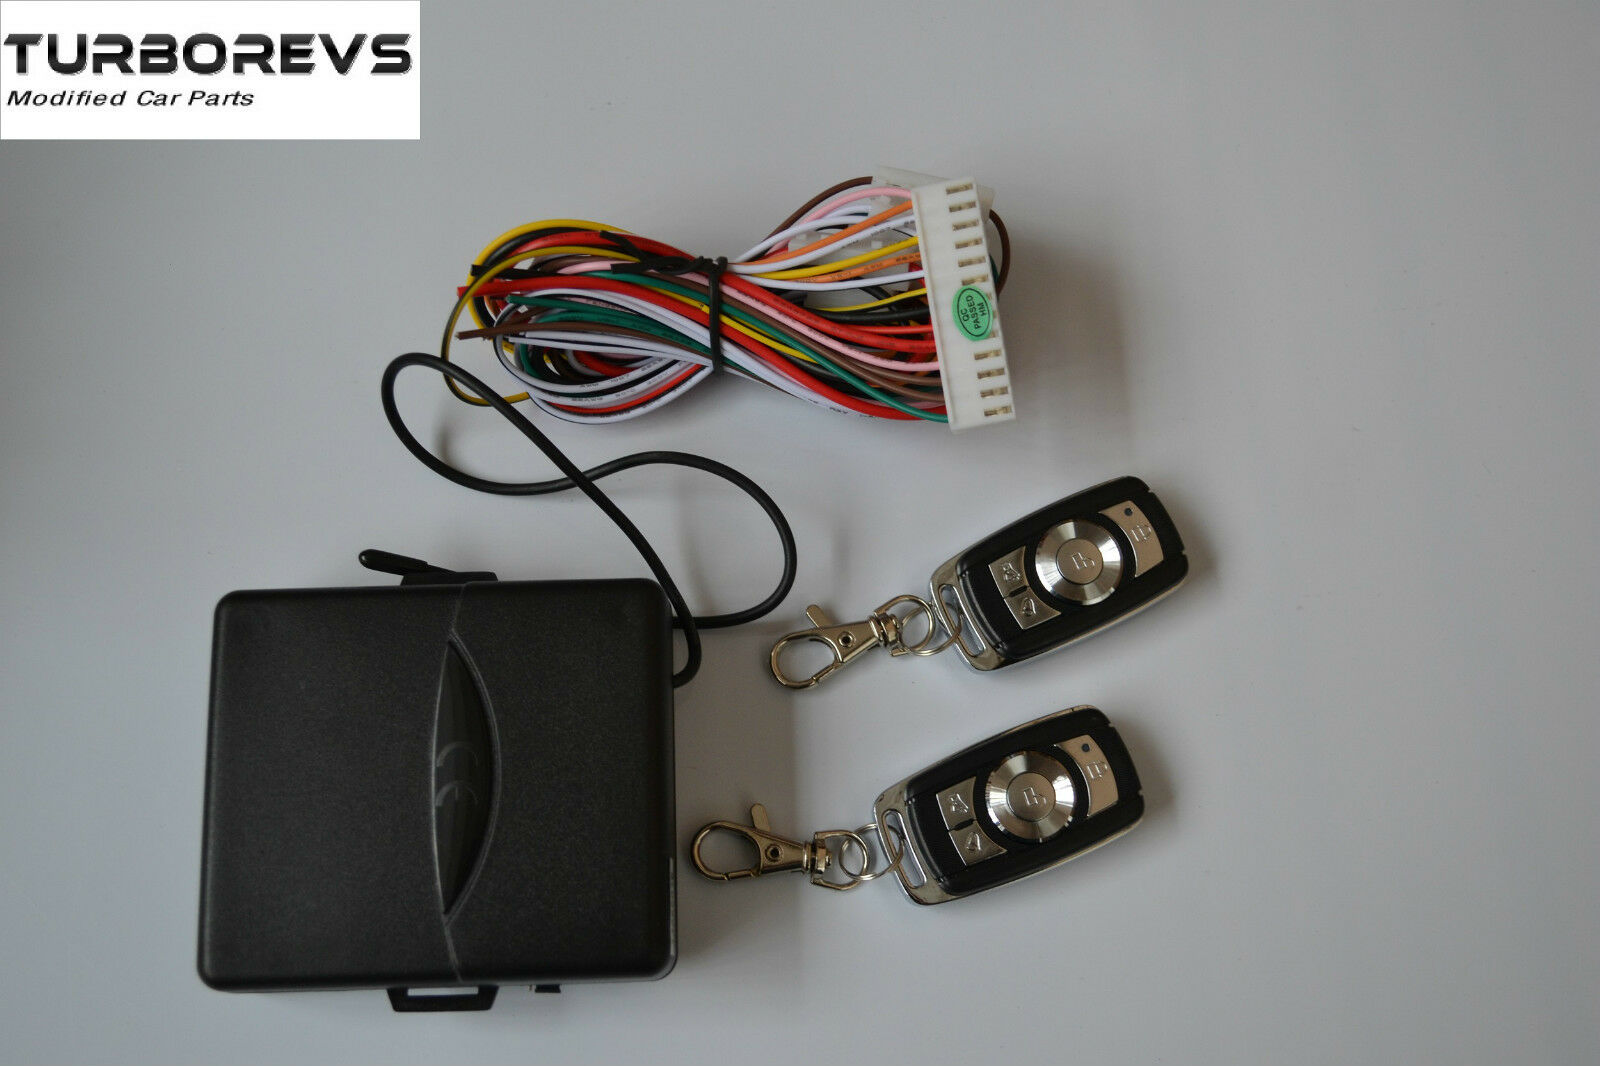 Remote Keyless Entry Central Locking Kit Ford Fiesta Ka Focus Mondeo 3 Wire Positive Trigger Schematic Of Cars Door Systems